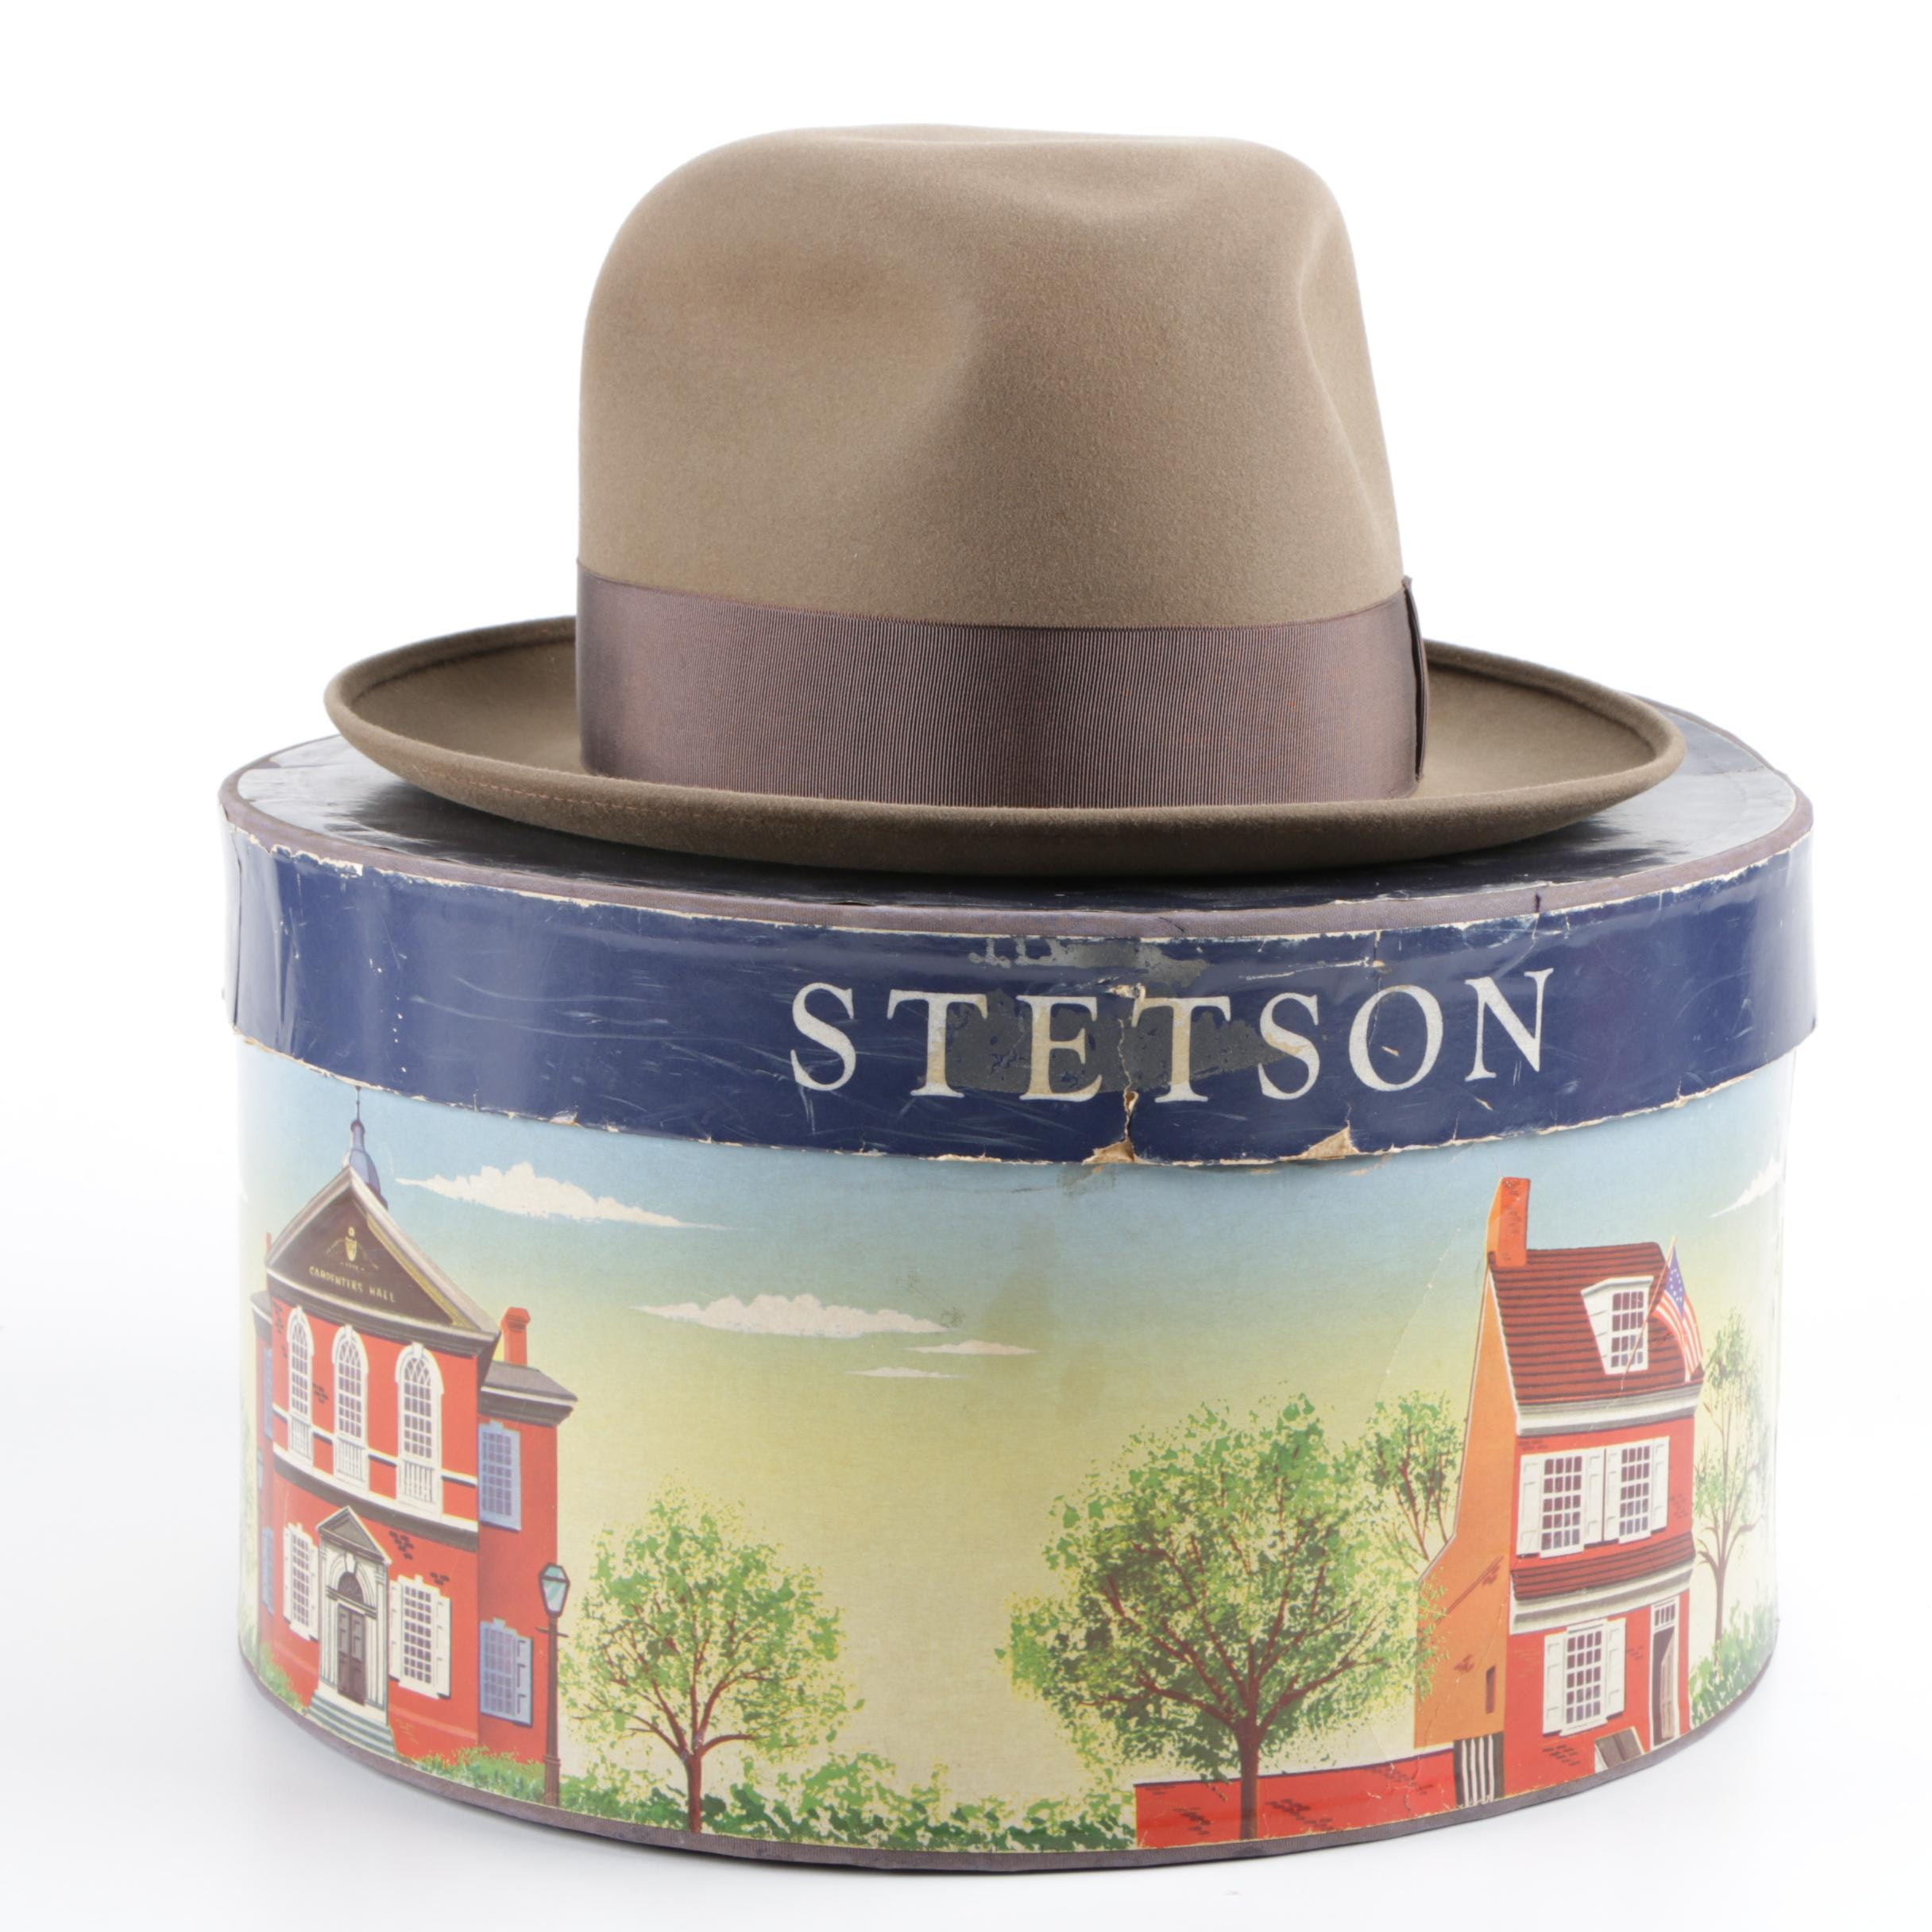 Men's Royal Stetson Tan Beaver Fur Felt Hat with Hat Box